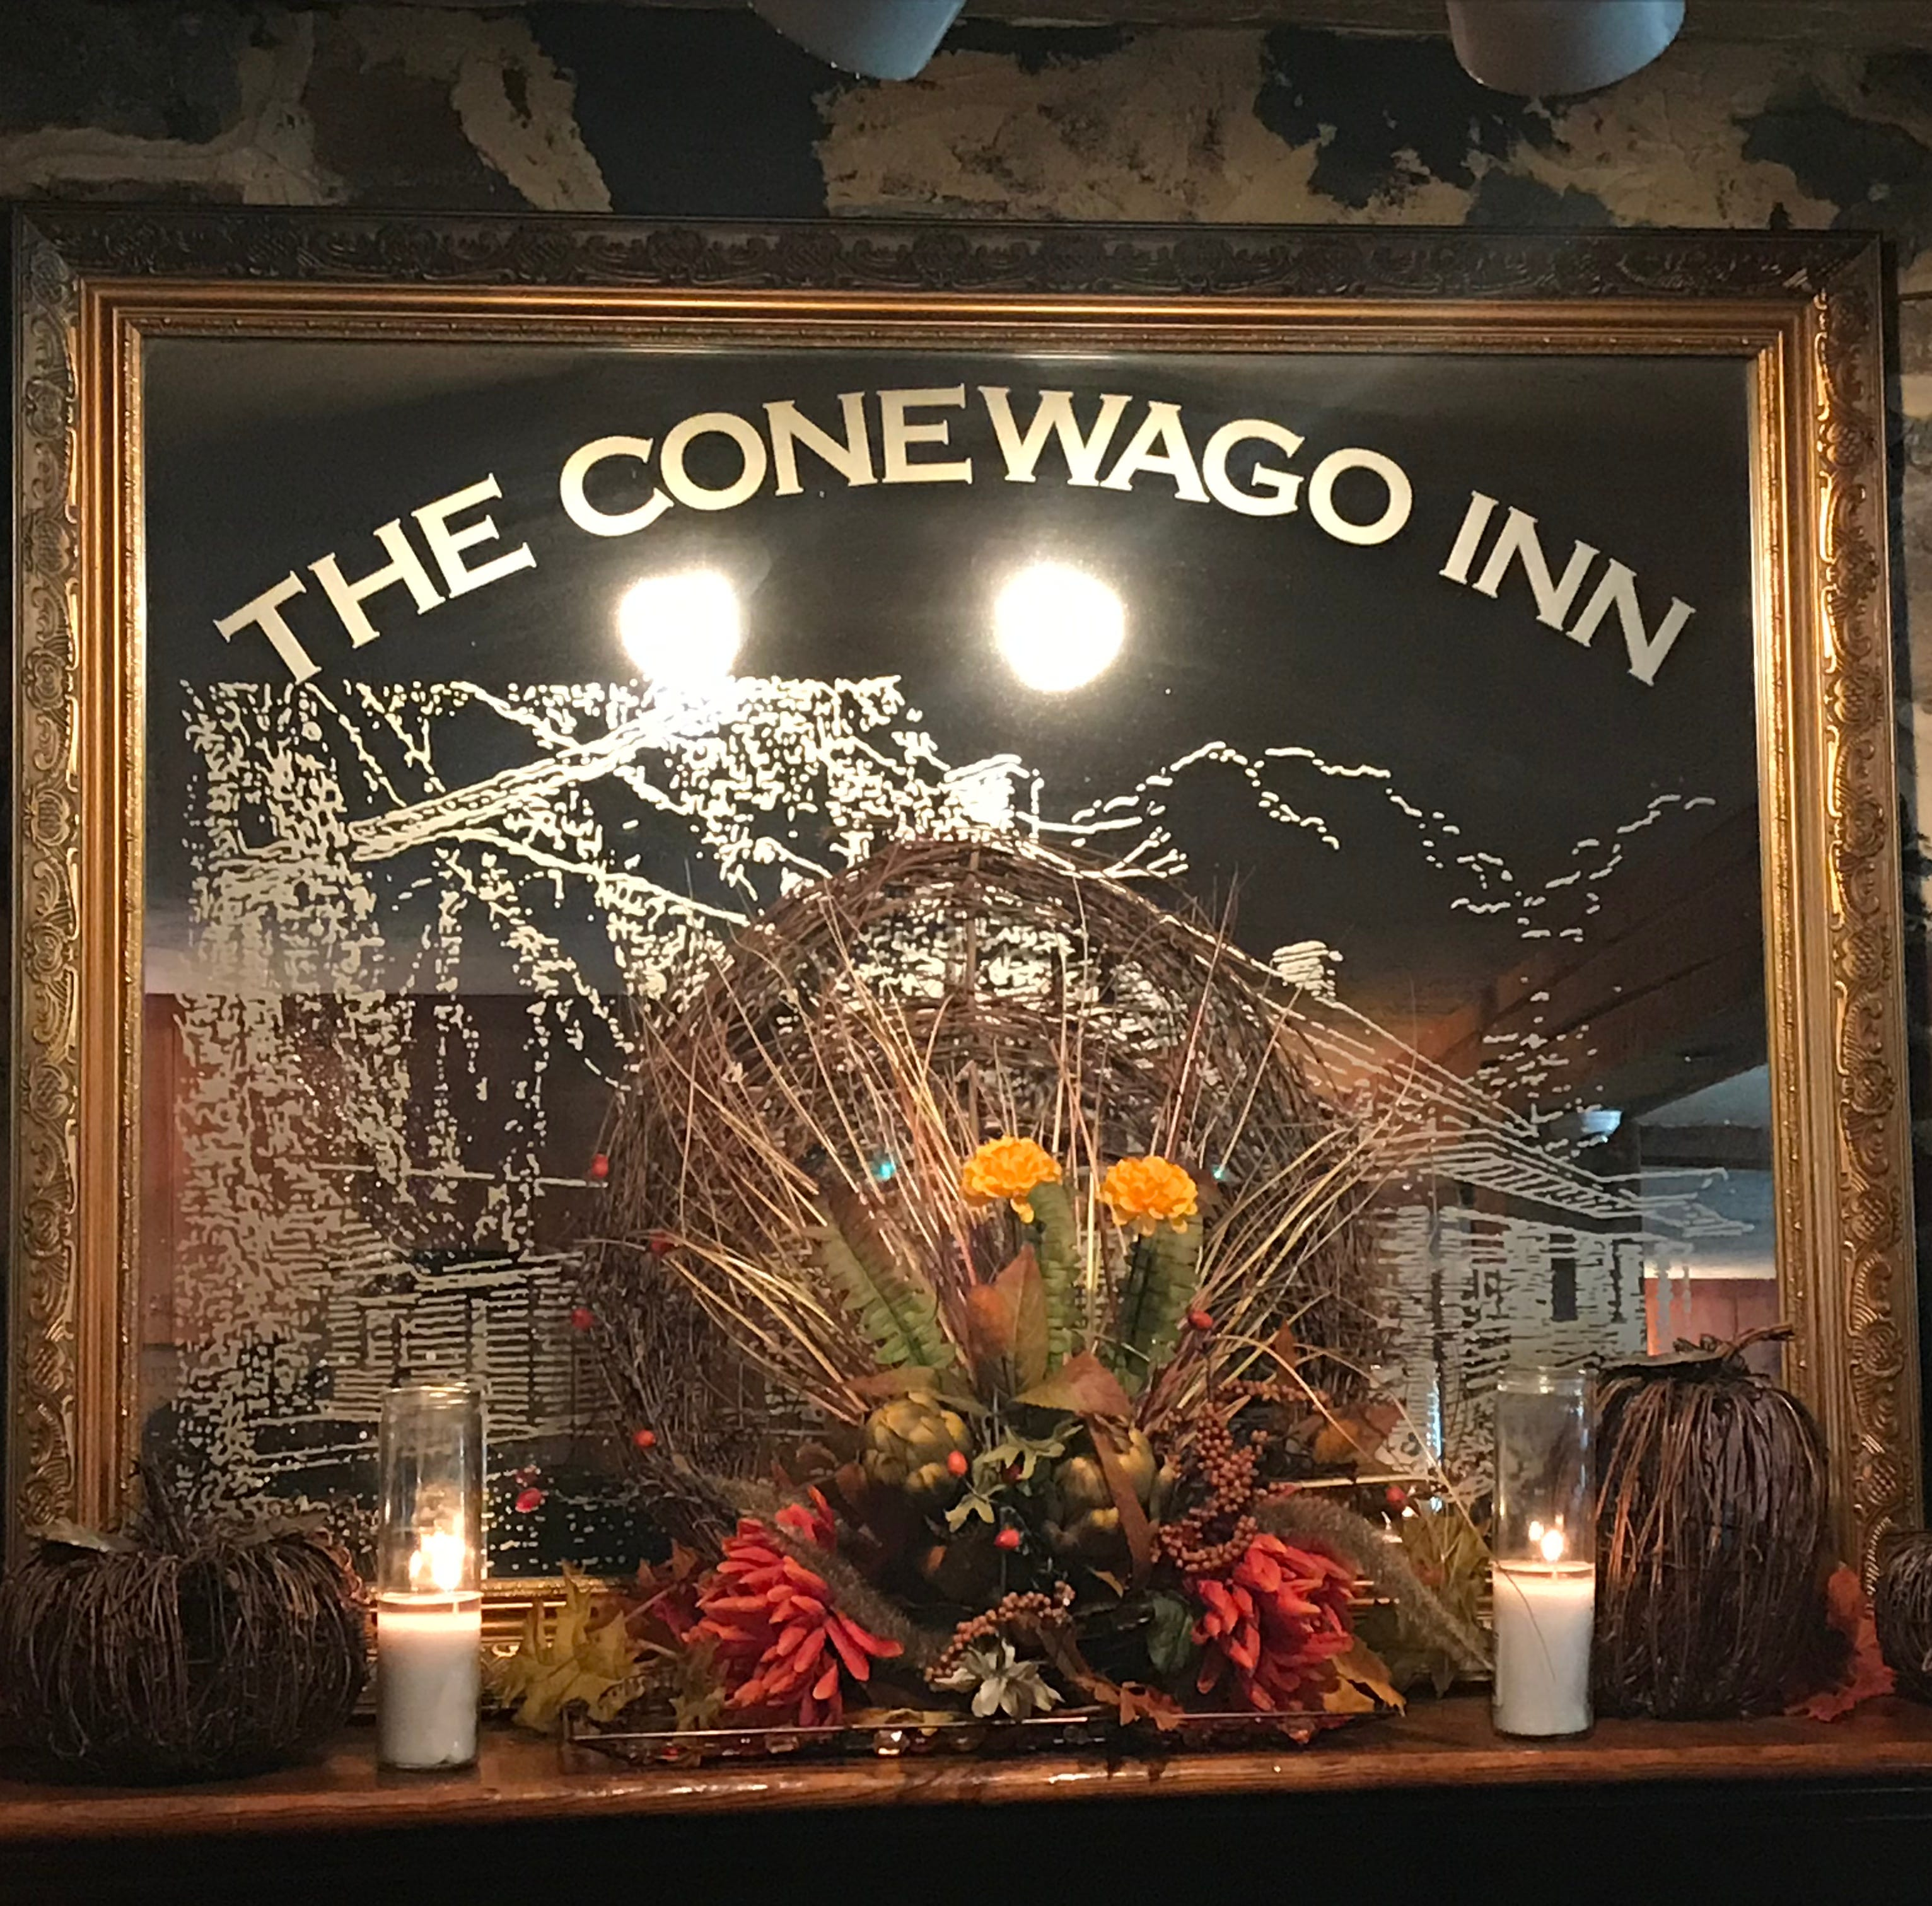 Conewago Inn's Thanksgiving buffet started with customer demand, built into a tradition